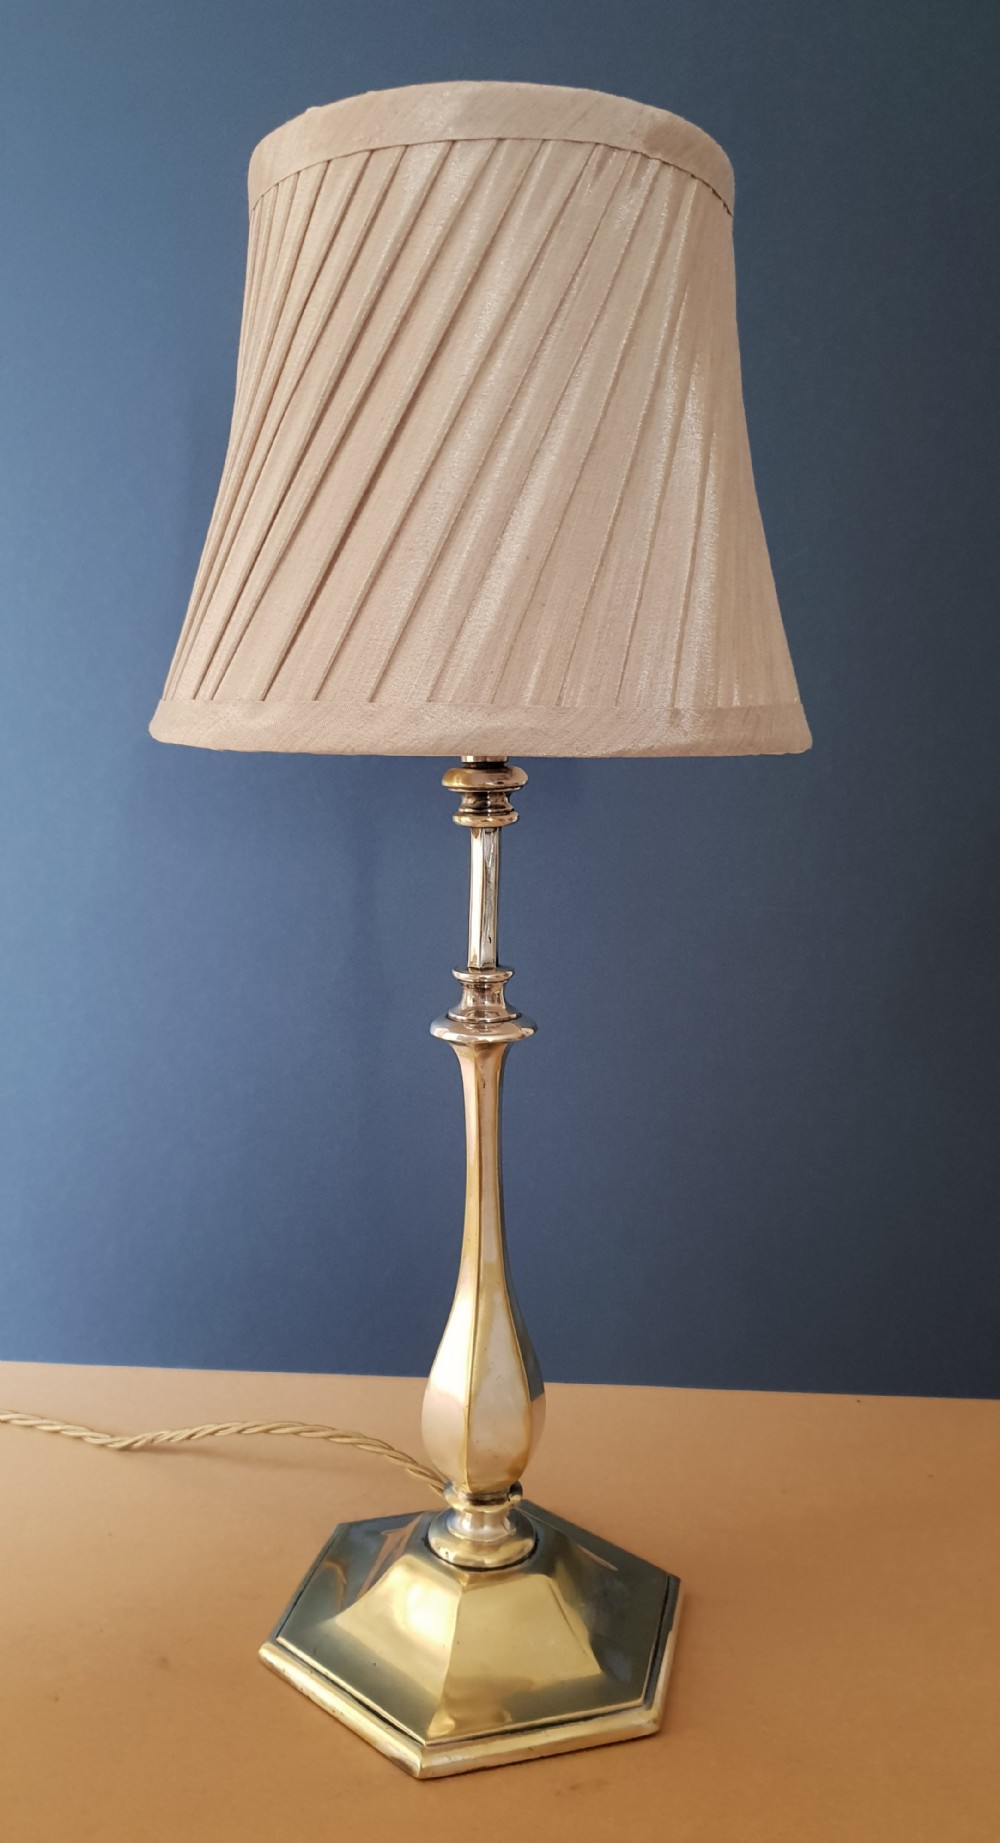 distressed silver plated brass table lamp rewired and pat tested